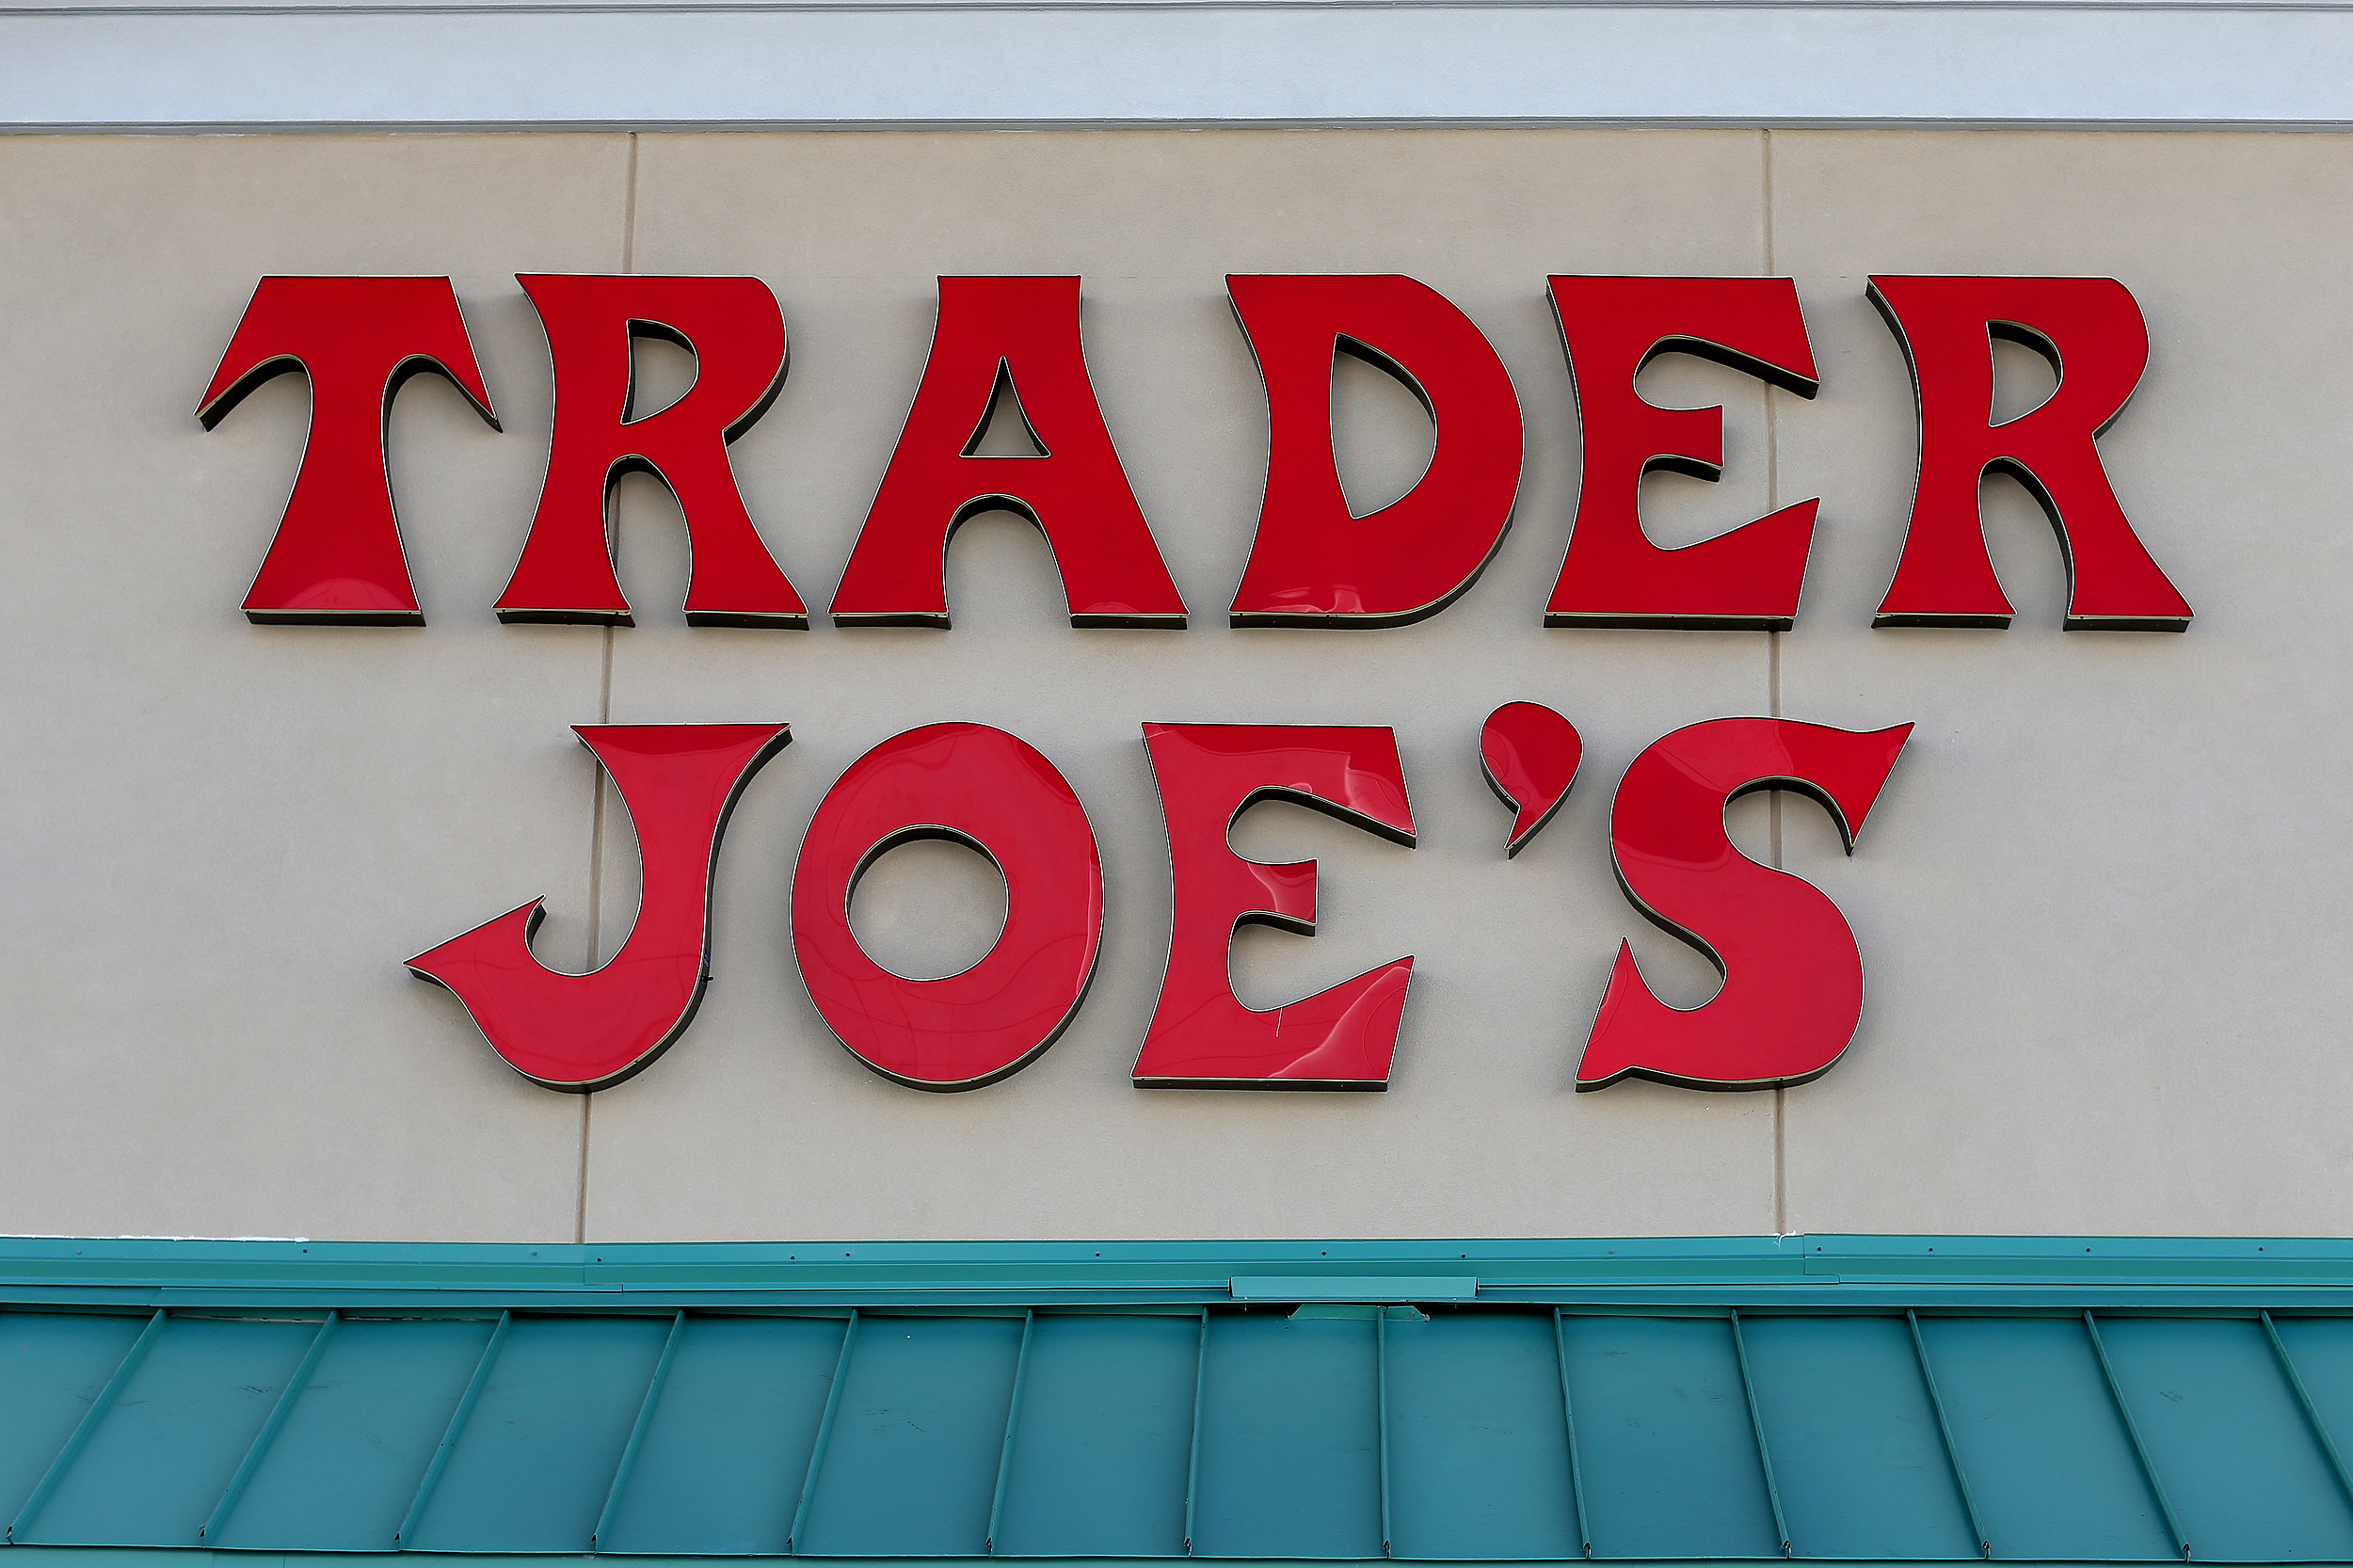 How To Request A Trader Joes In Your Area